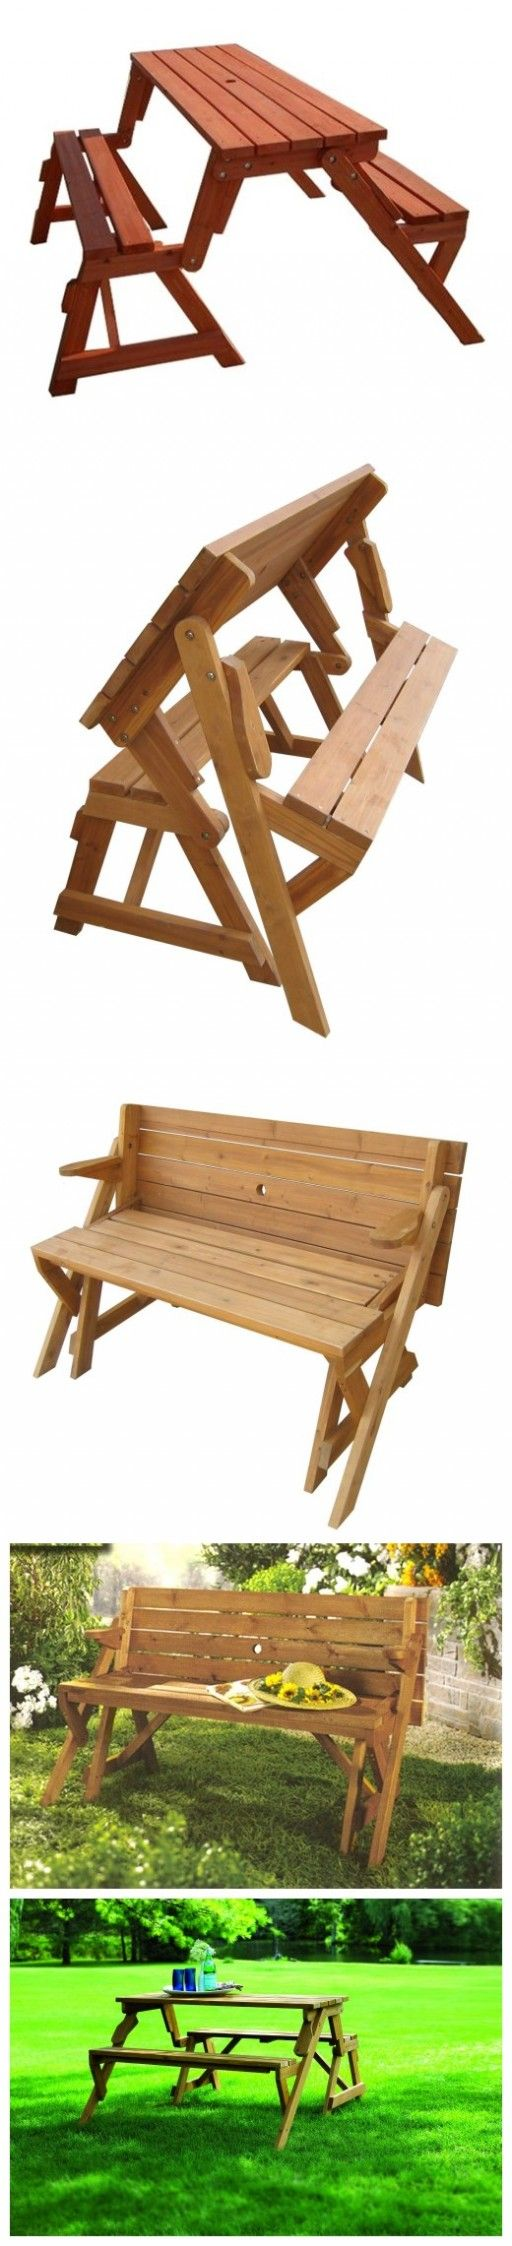 convertible picnic table / bench | ℛandom ℭreative ℐdeas ...